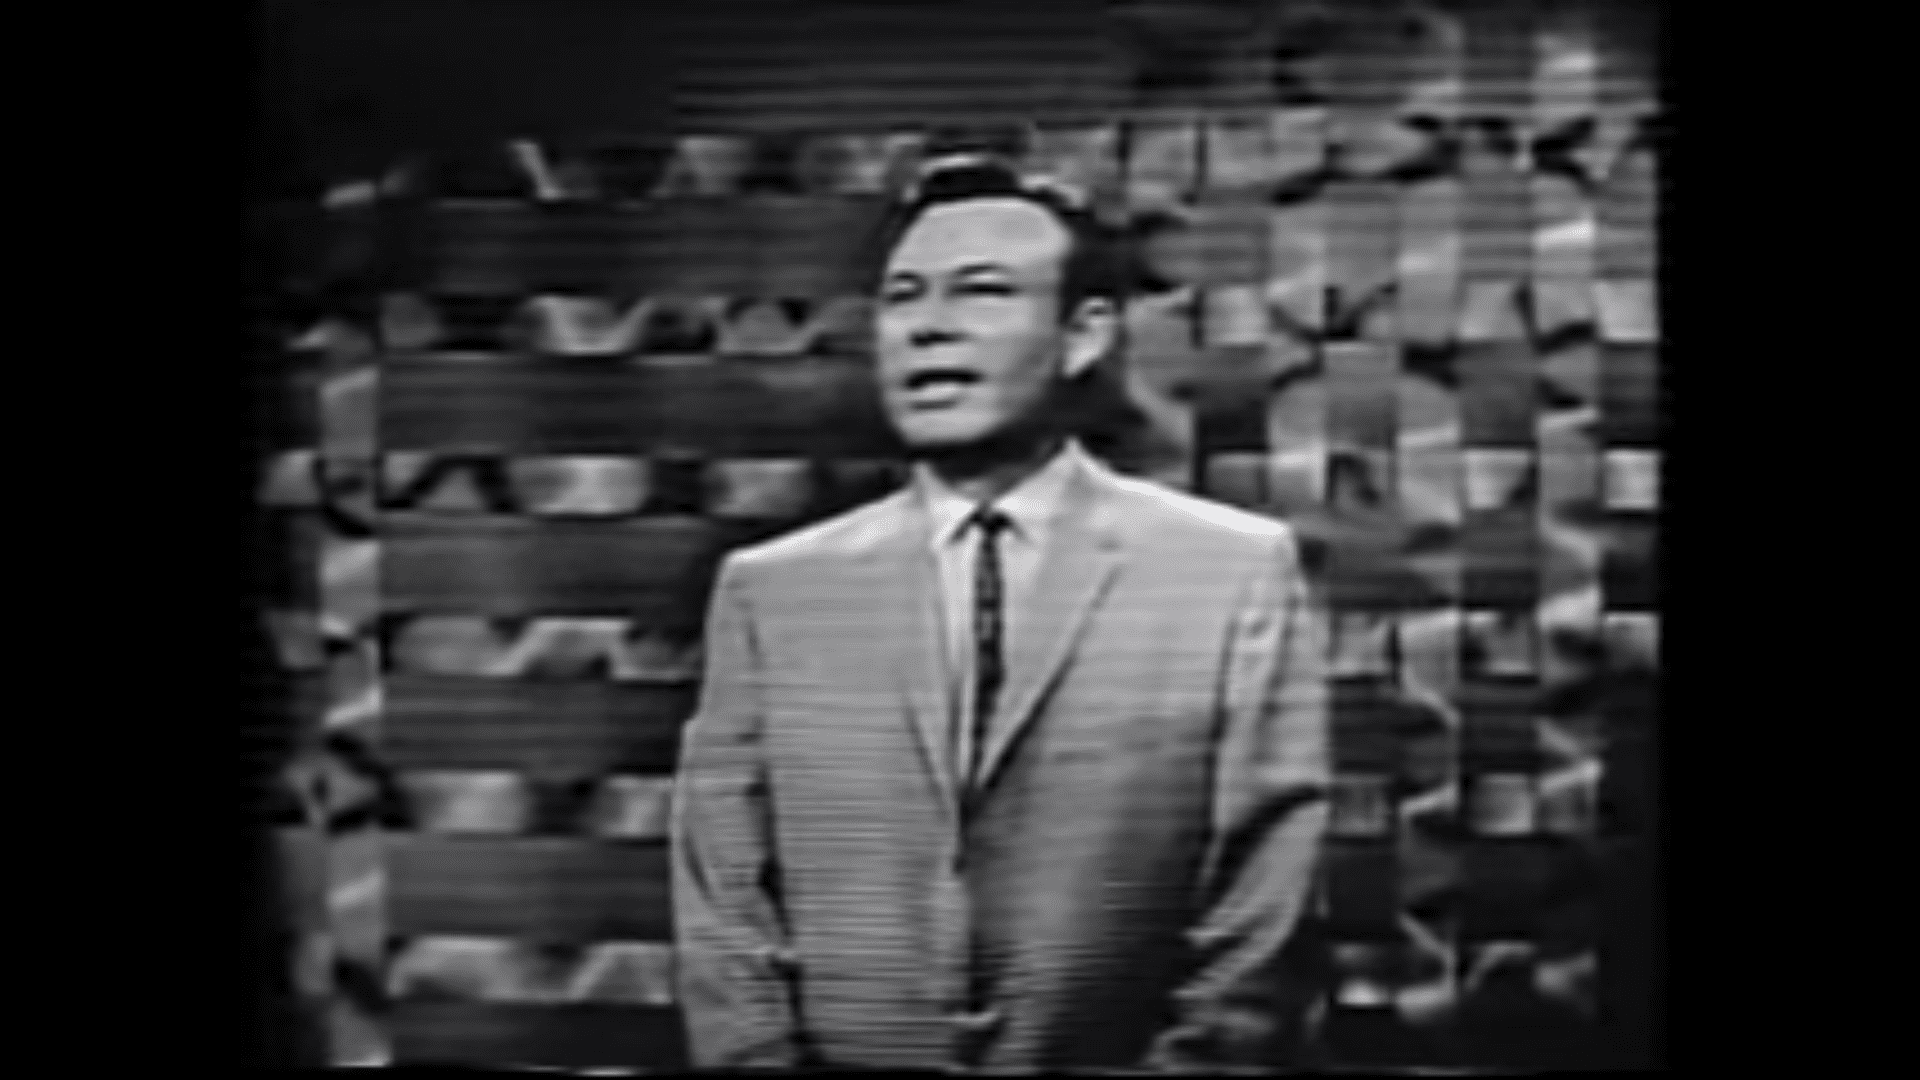 He'll Have to Go, Jim Reeves